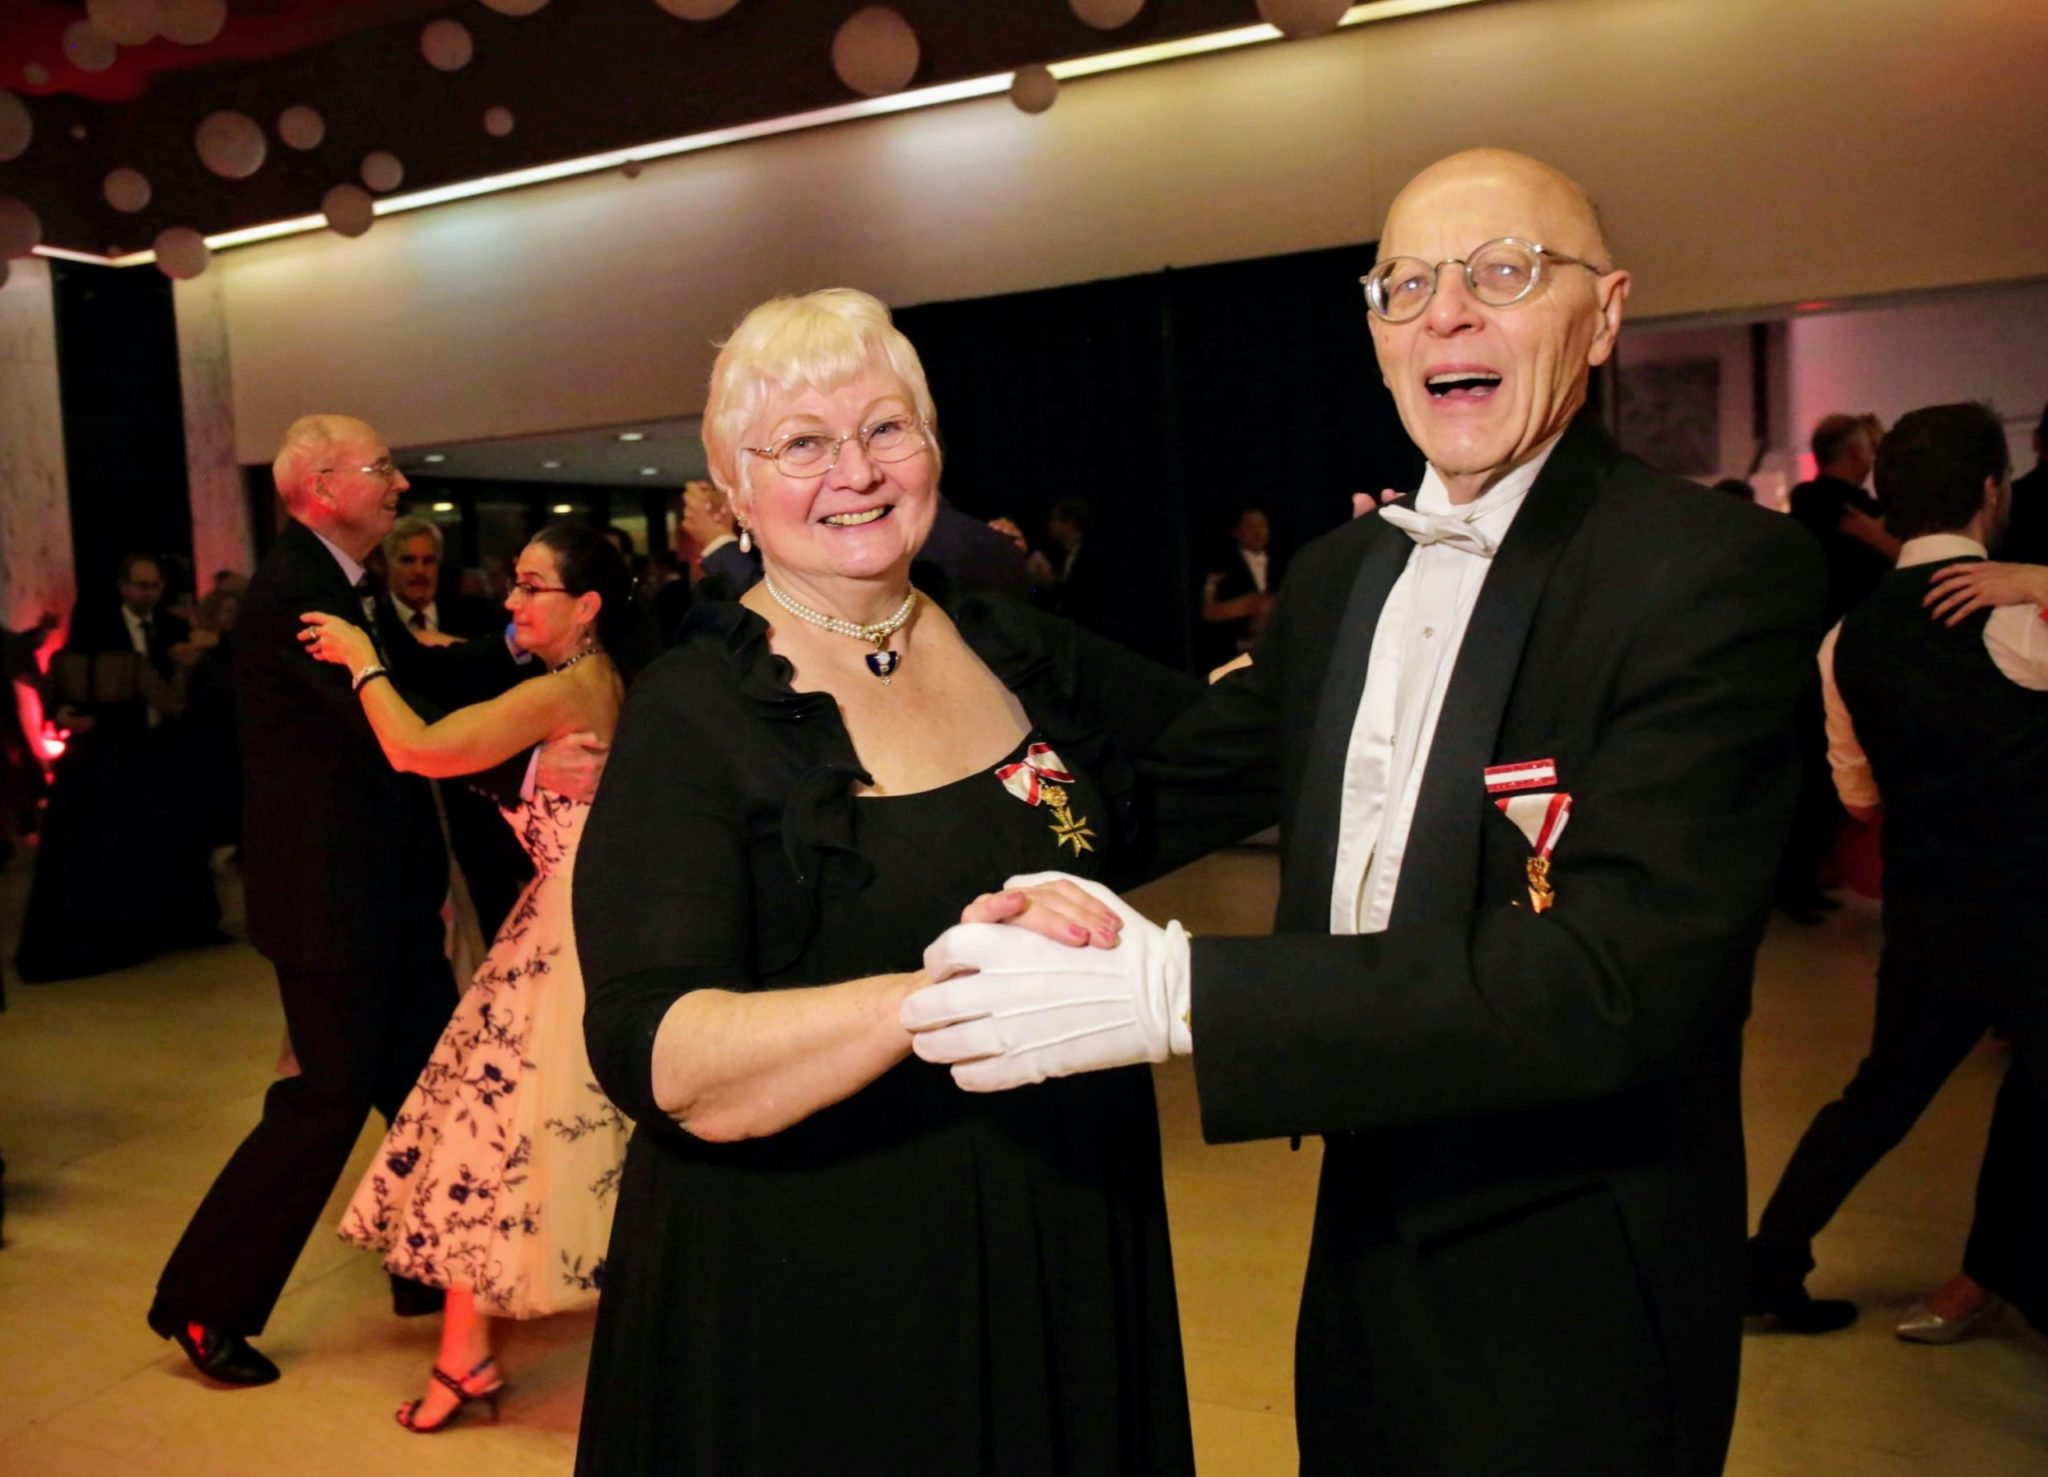 Meet the Septuagenarian Couple That Teaches DC How to Waltz